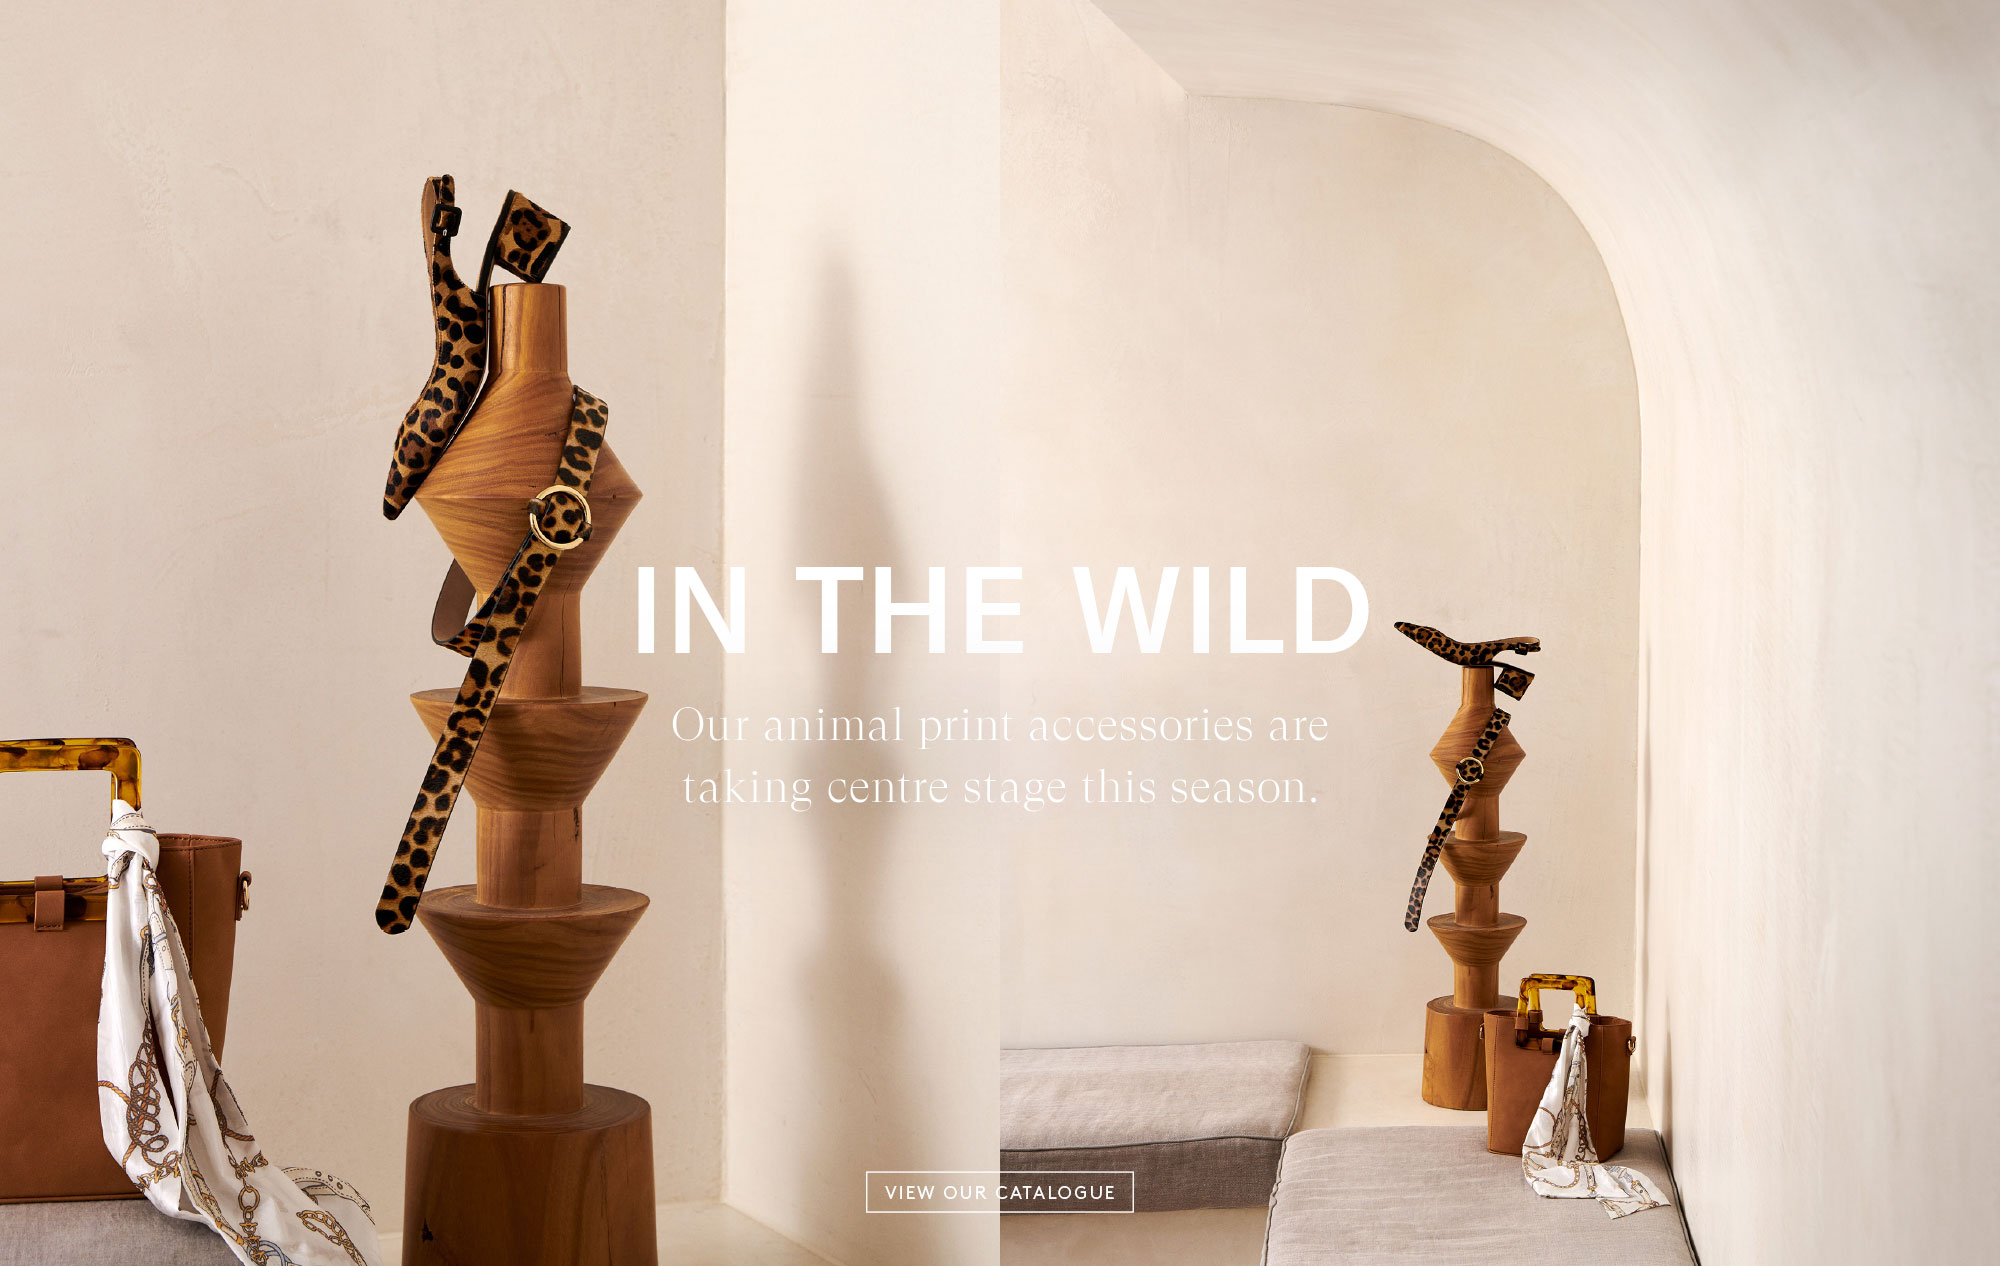 2019 Autumn Catalogue - In The Wild - Our animal print accessories are taking centre stage this season. - View Our Catalogue